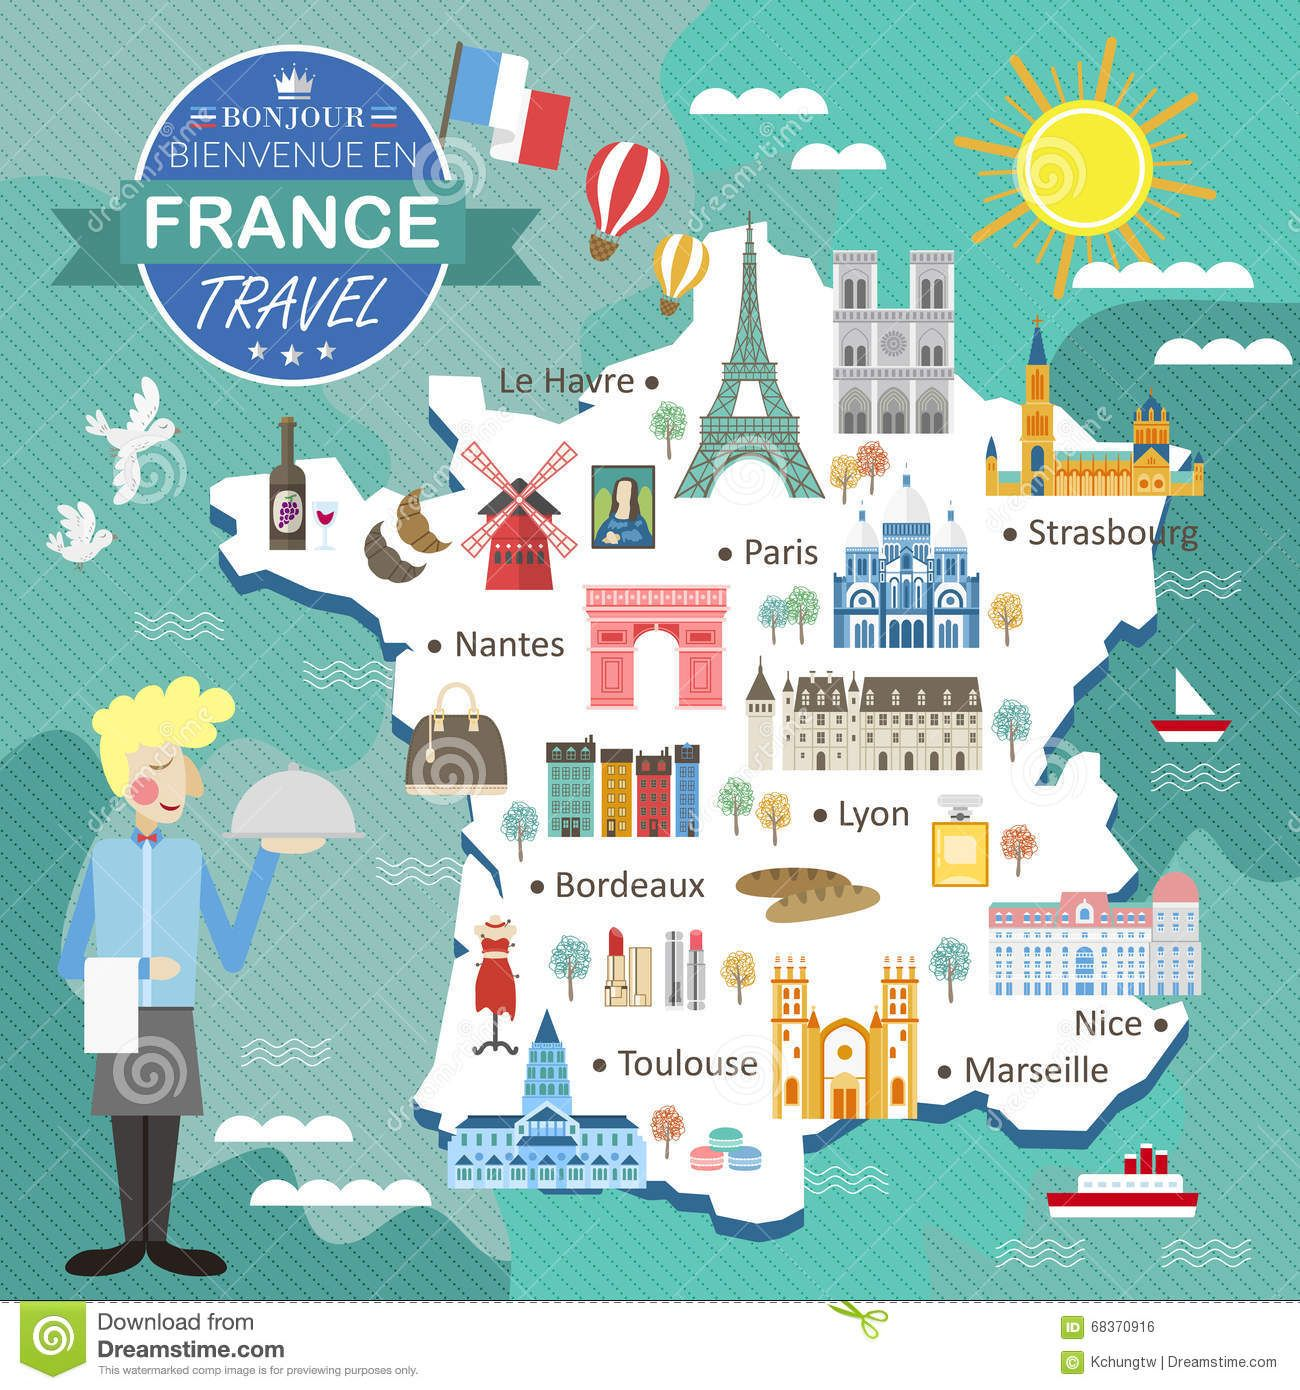 Mapa Turistico De Toulouse.Illustration About Attractive France Travel Map With Attractions And Specialties Illustration Of Bread Traveler Fa In 2020 France Travel Illustrated Map Travel Maps